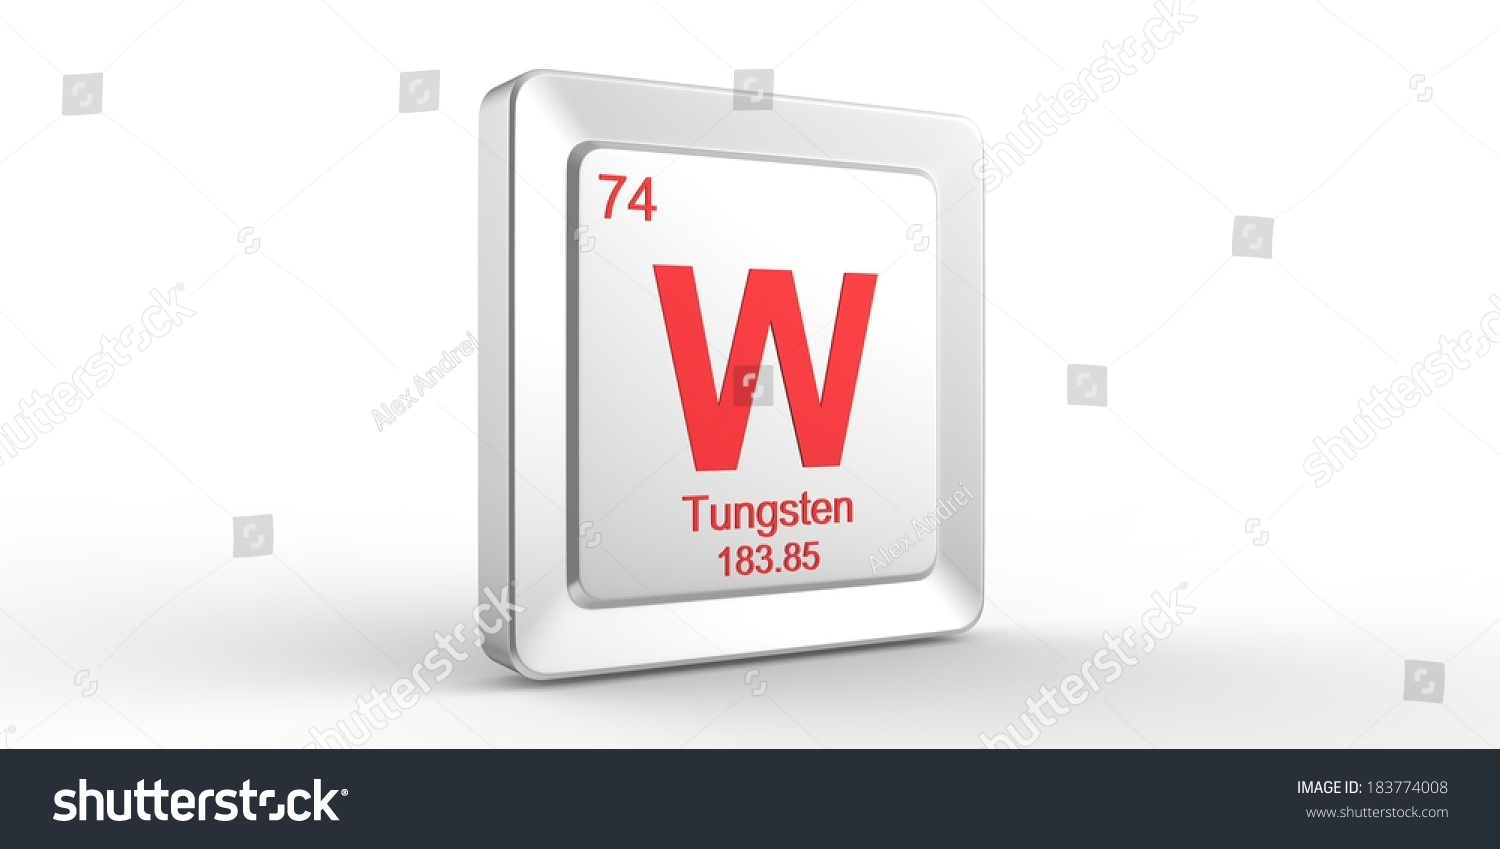 W symbol 74 material tungsten chemical stock illustration 183774008 w symbol 74 material tungsten chemical stock illustration 183774008 shutterstock urtaz Images